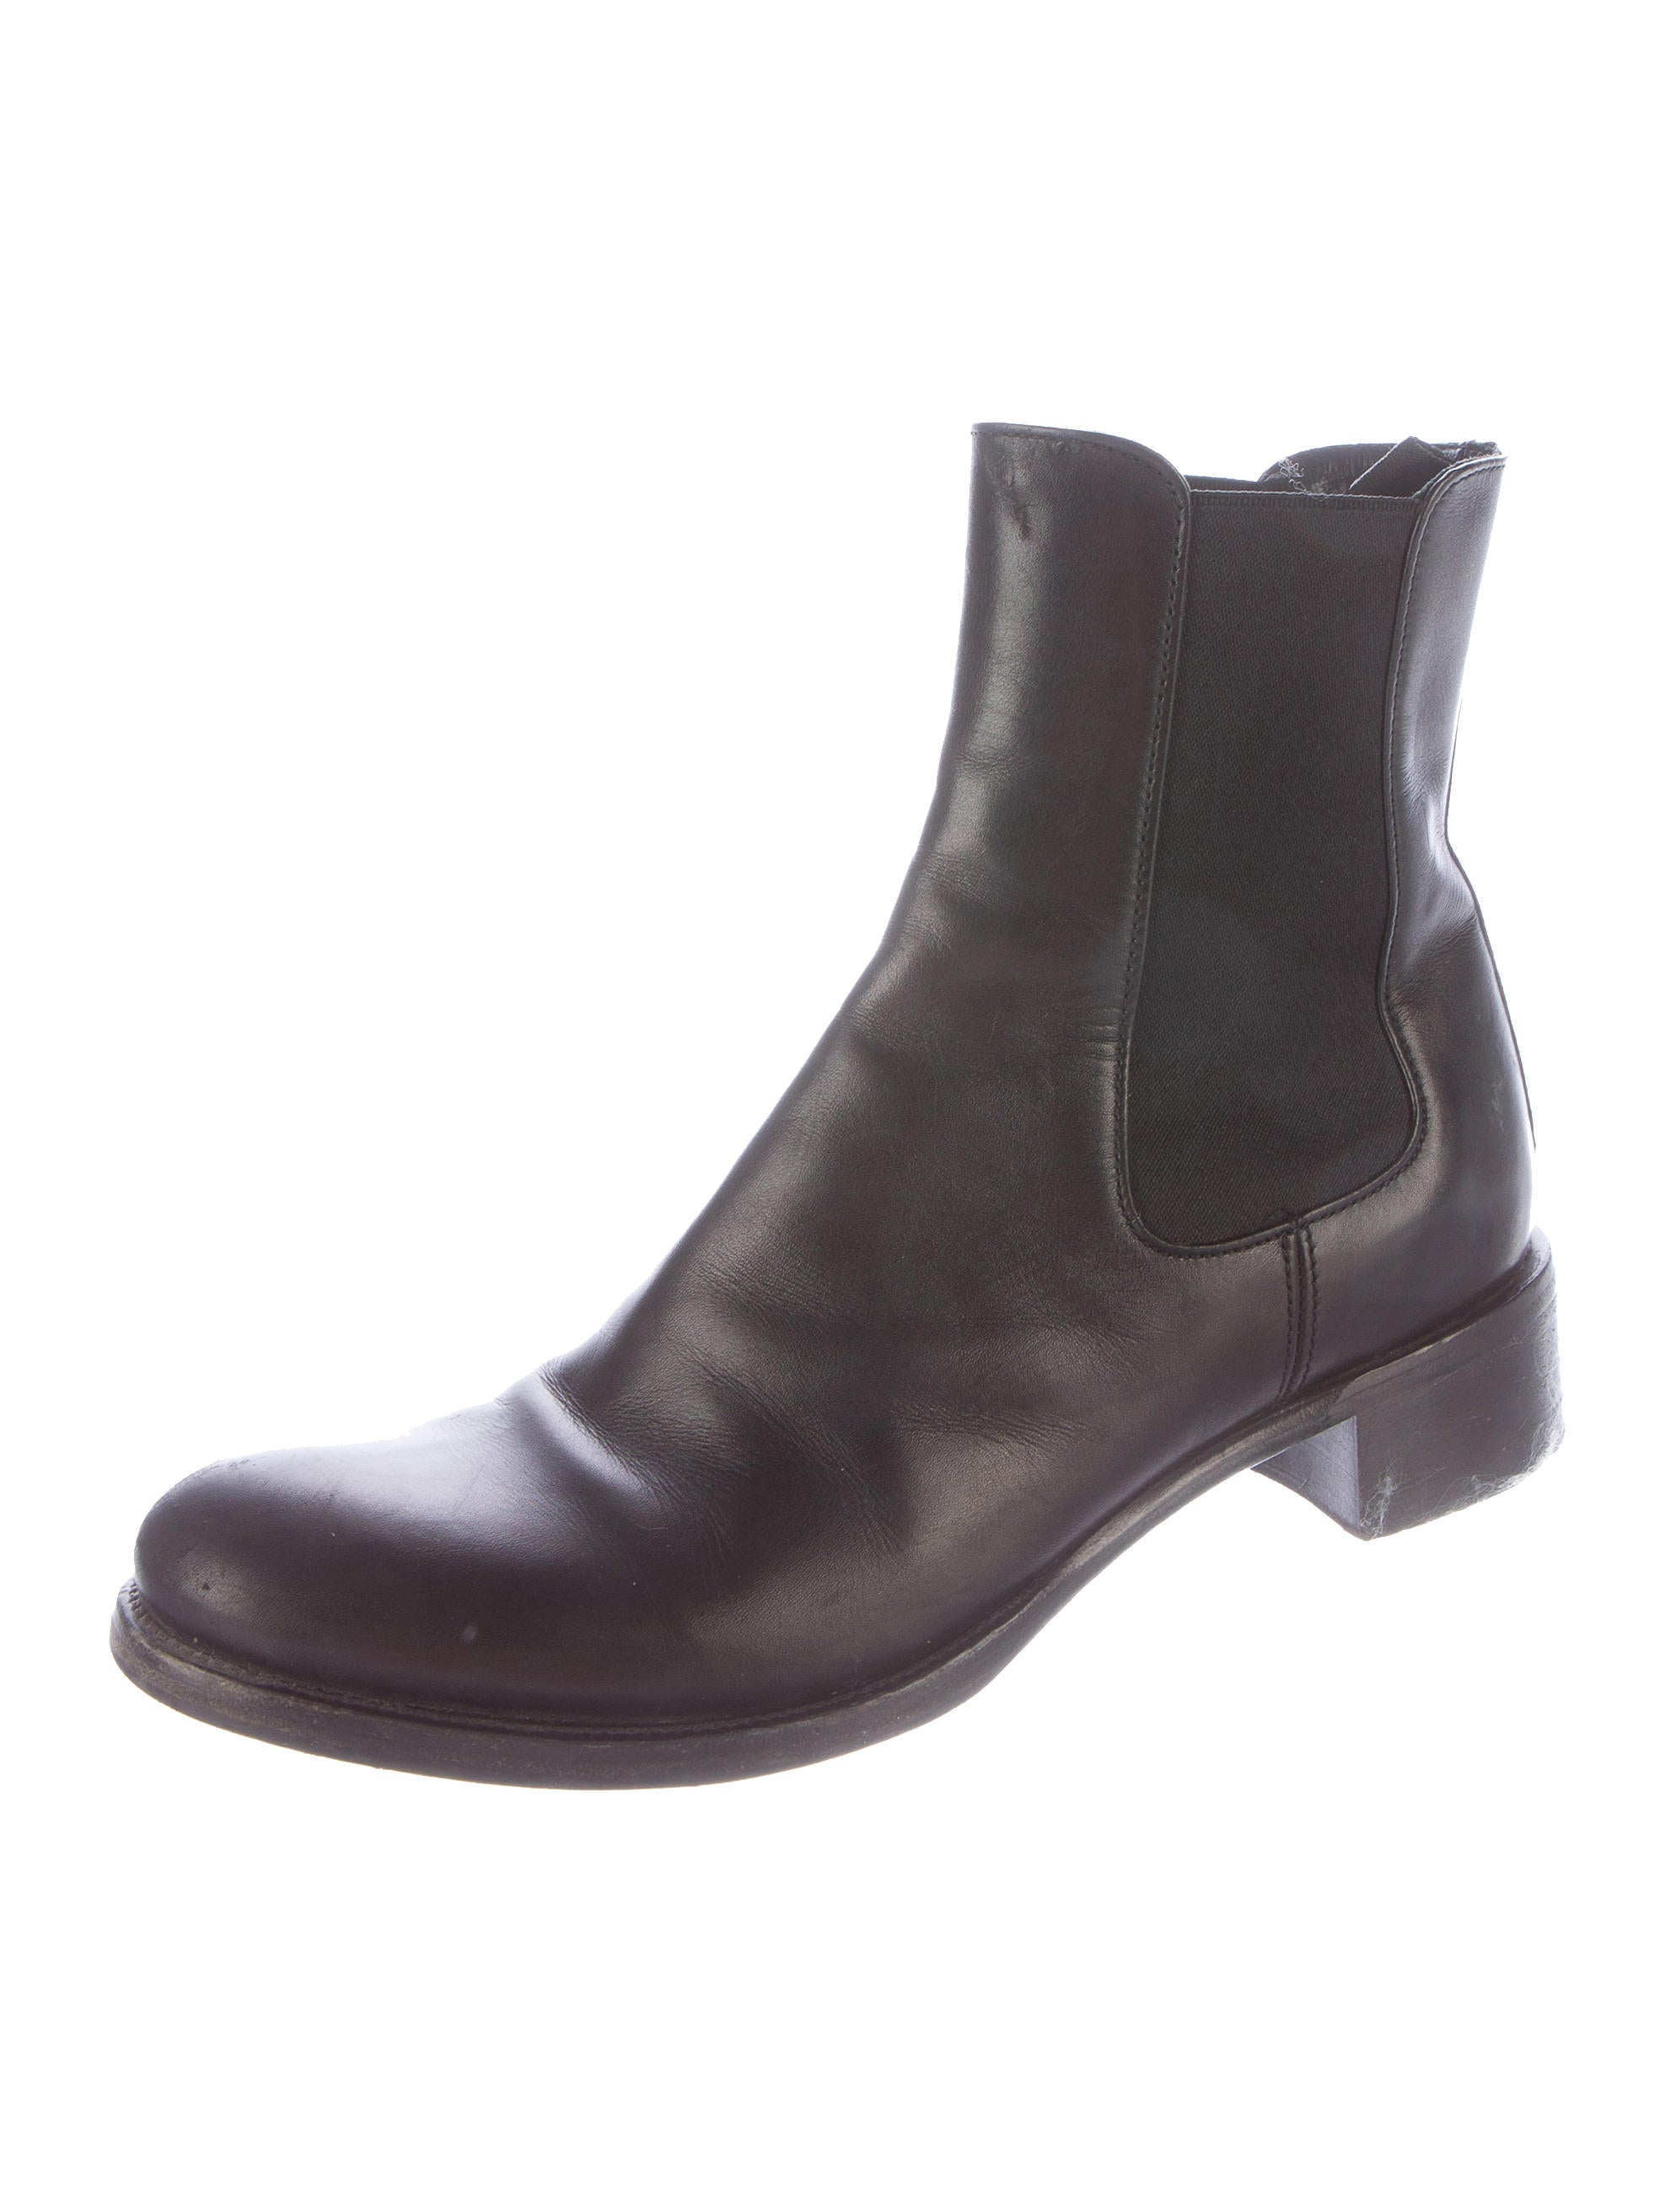 prada leather chelsea ankle boots shoes pra111032